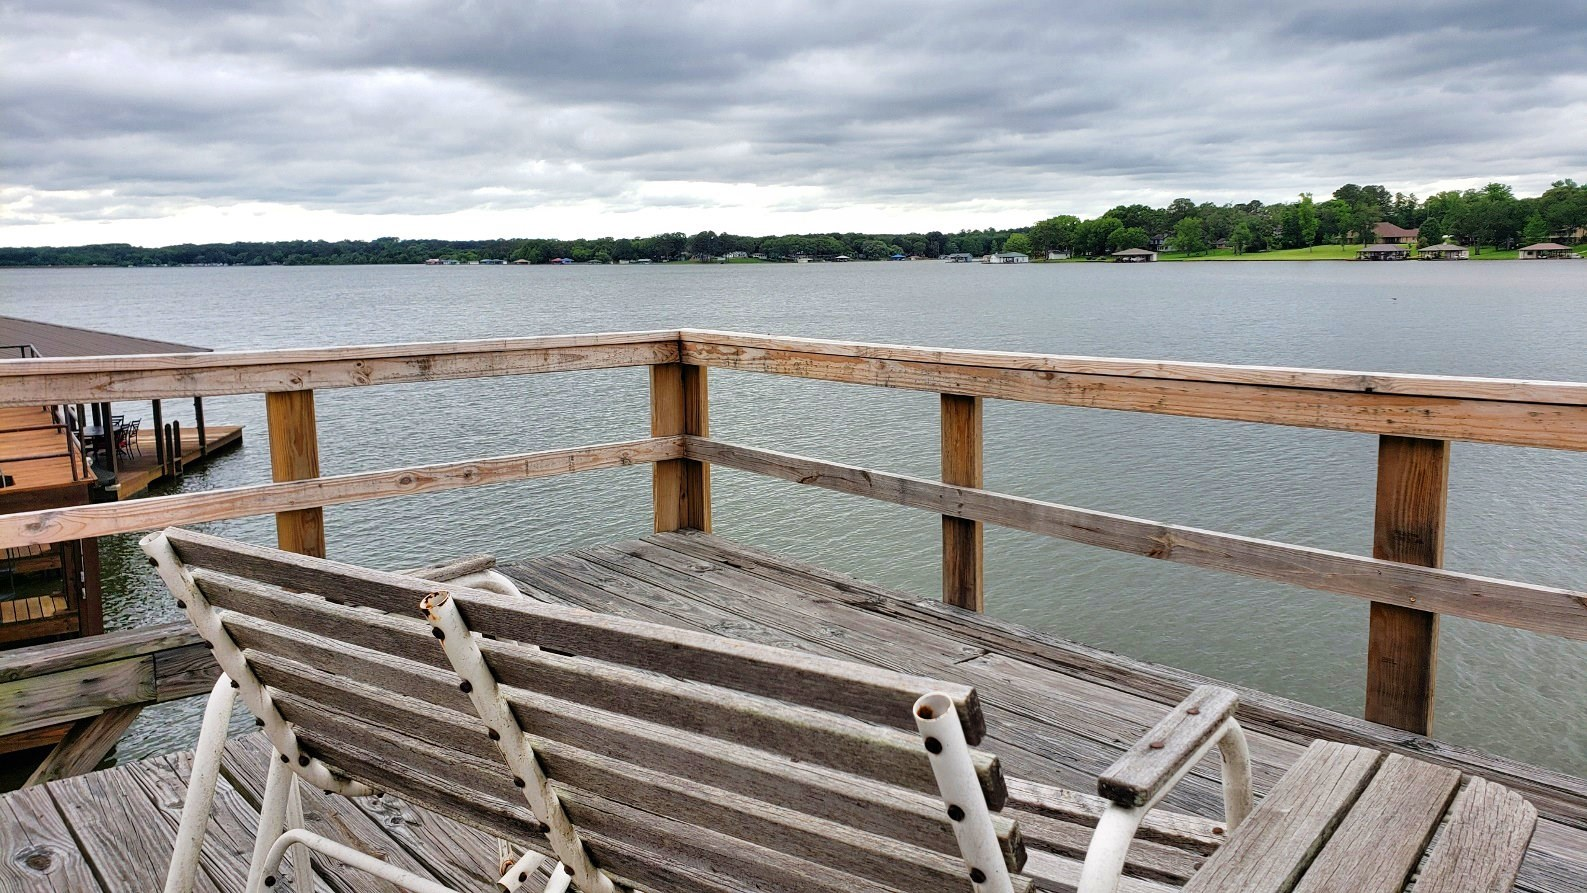 WATERFRONT LOT WITH BOATHOUSE FOR SALE ON LAKE PALESTINE